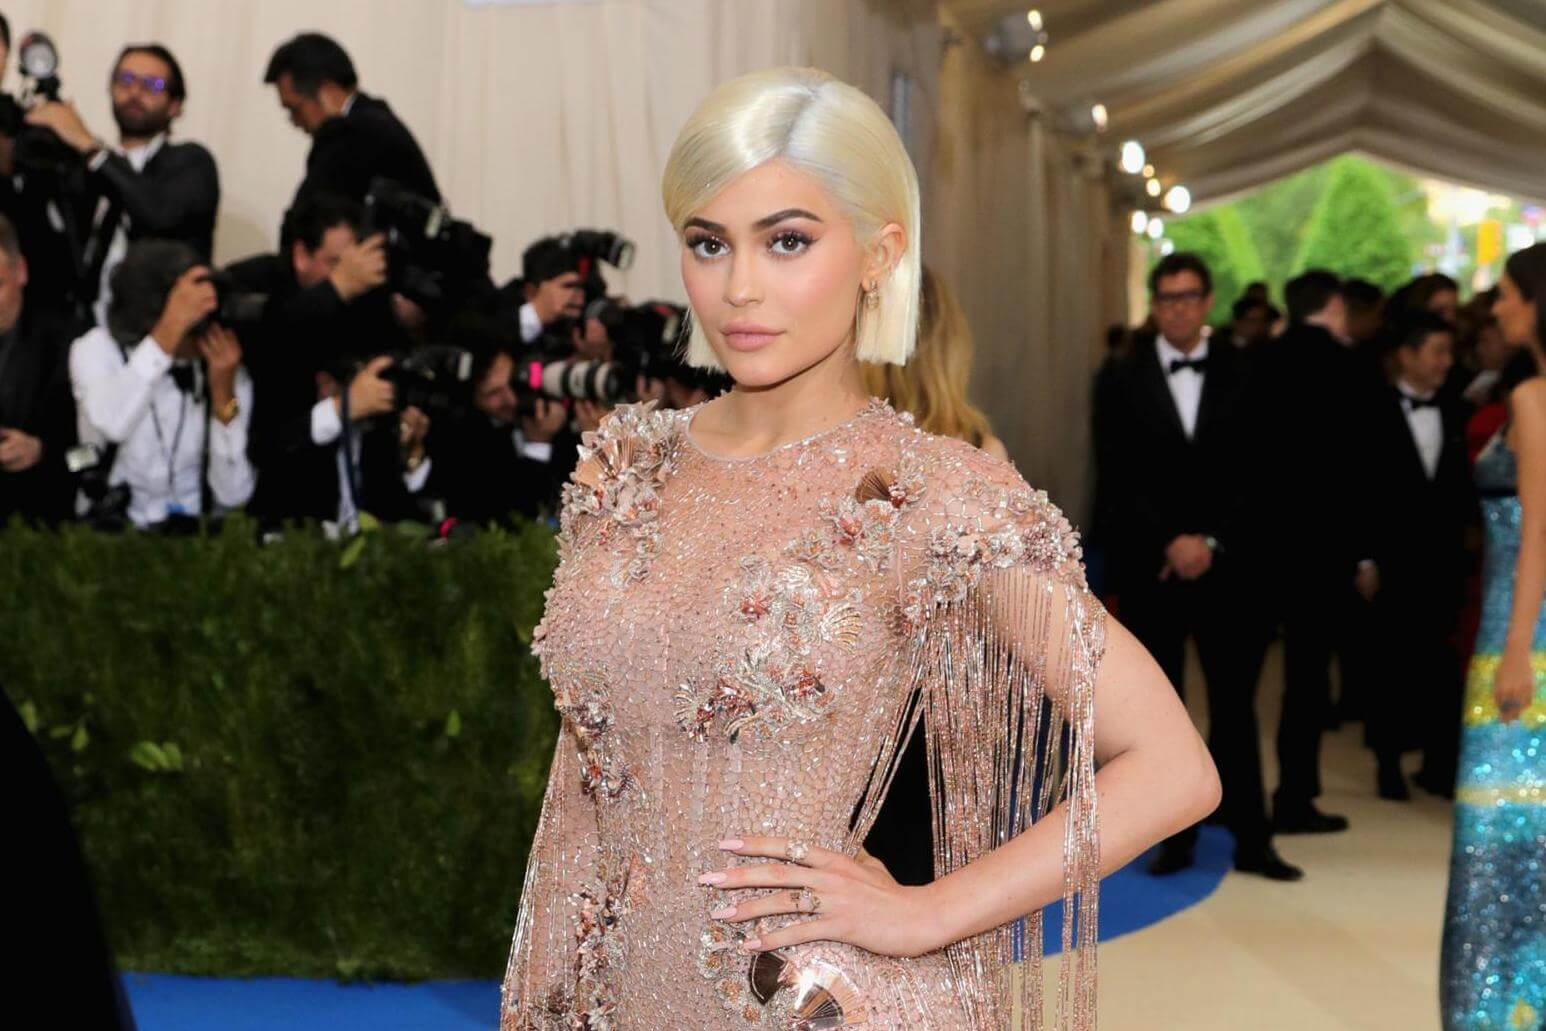 News Kylie Jenner's P*ssy Must Smell Like Money: She's the Youngest Billionaire in the World